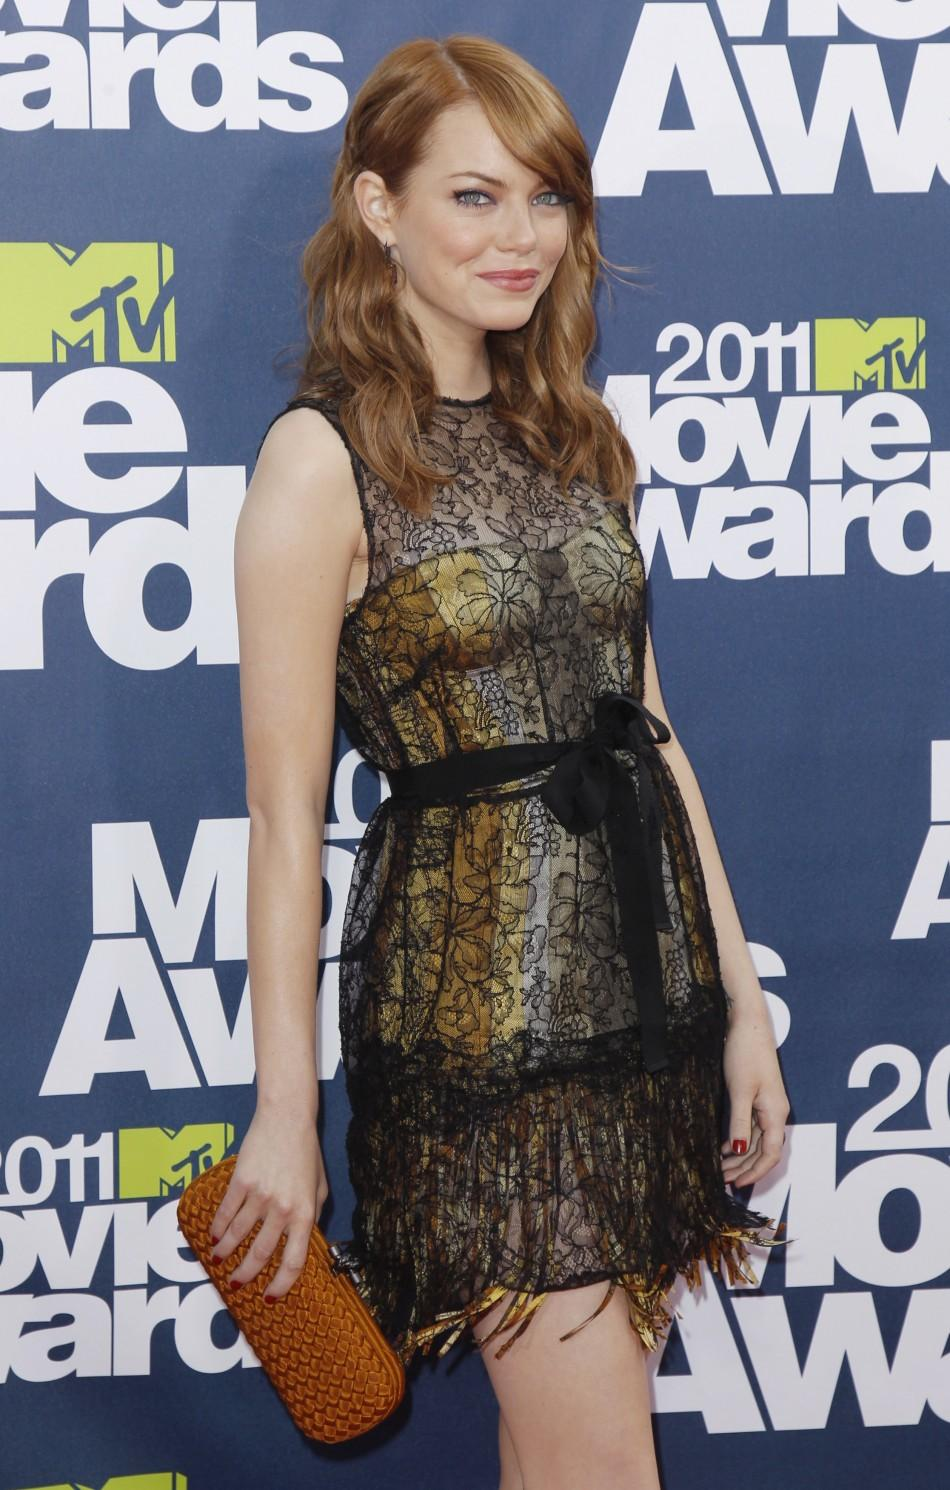 Actress Emma Stone arrives at the 2011 MTV Movie Awards in Los Angeles, June 5, 2011.